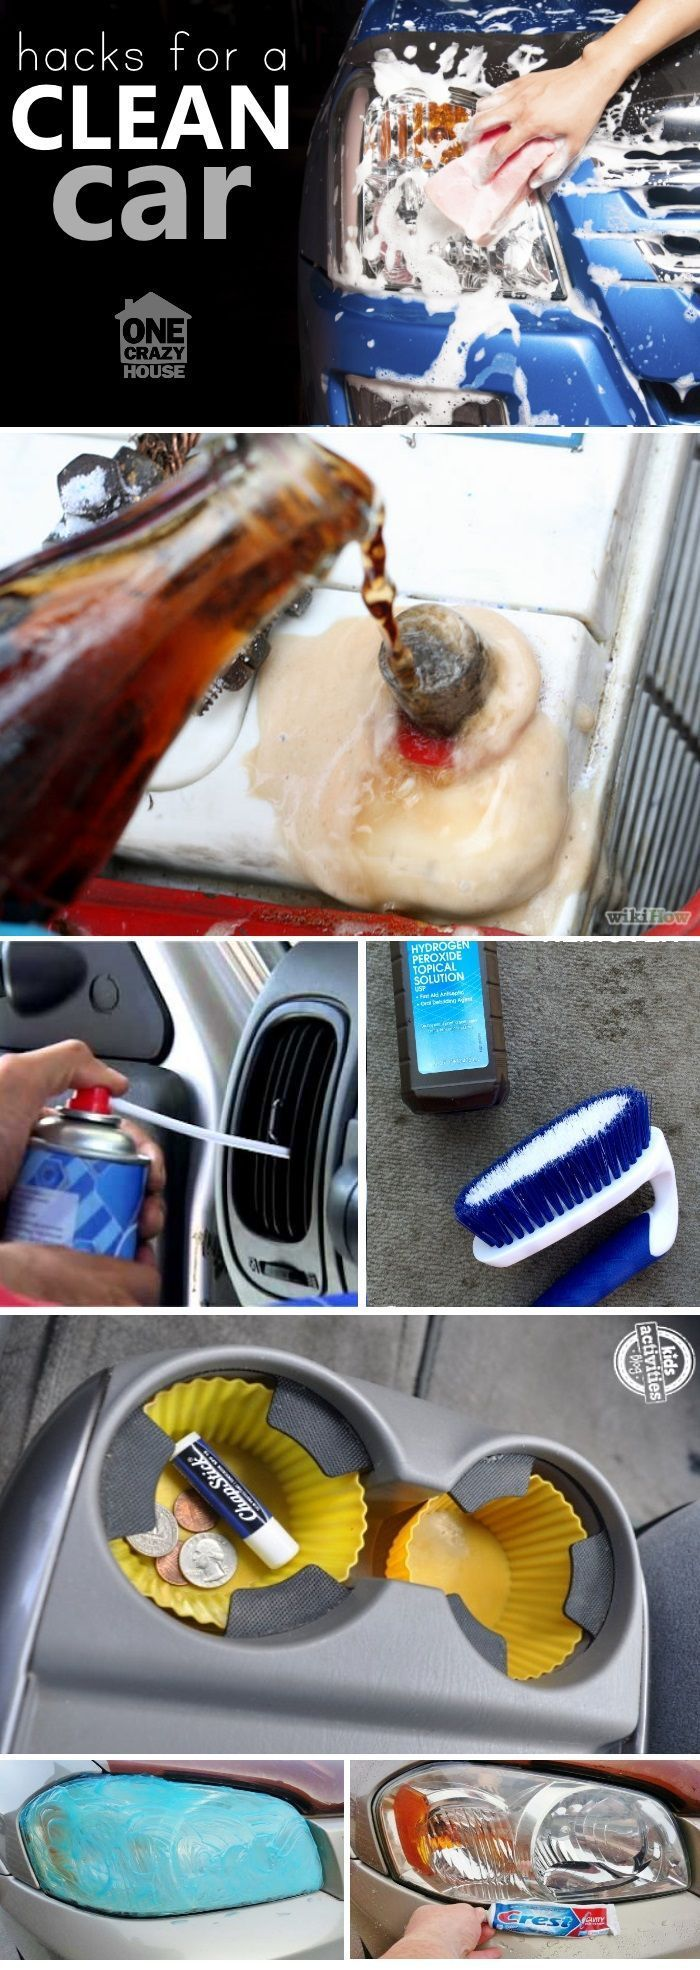 Easy DIY cleaning tricks and tips will help you clean your car |  Auto detailing tips! | Save money doing it yourself